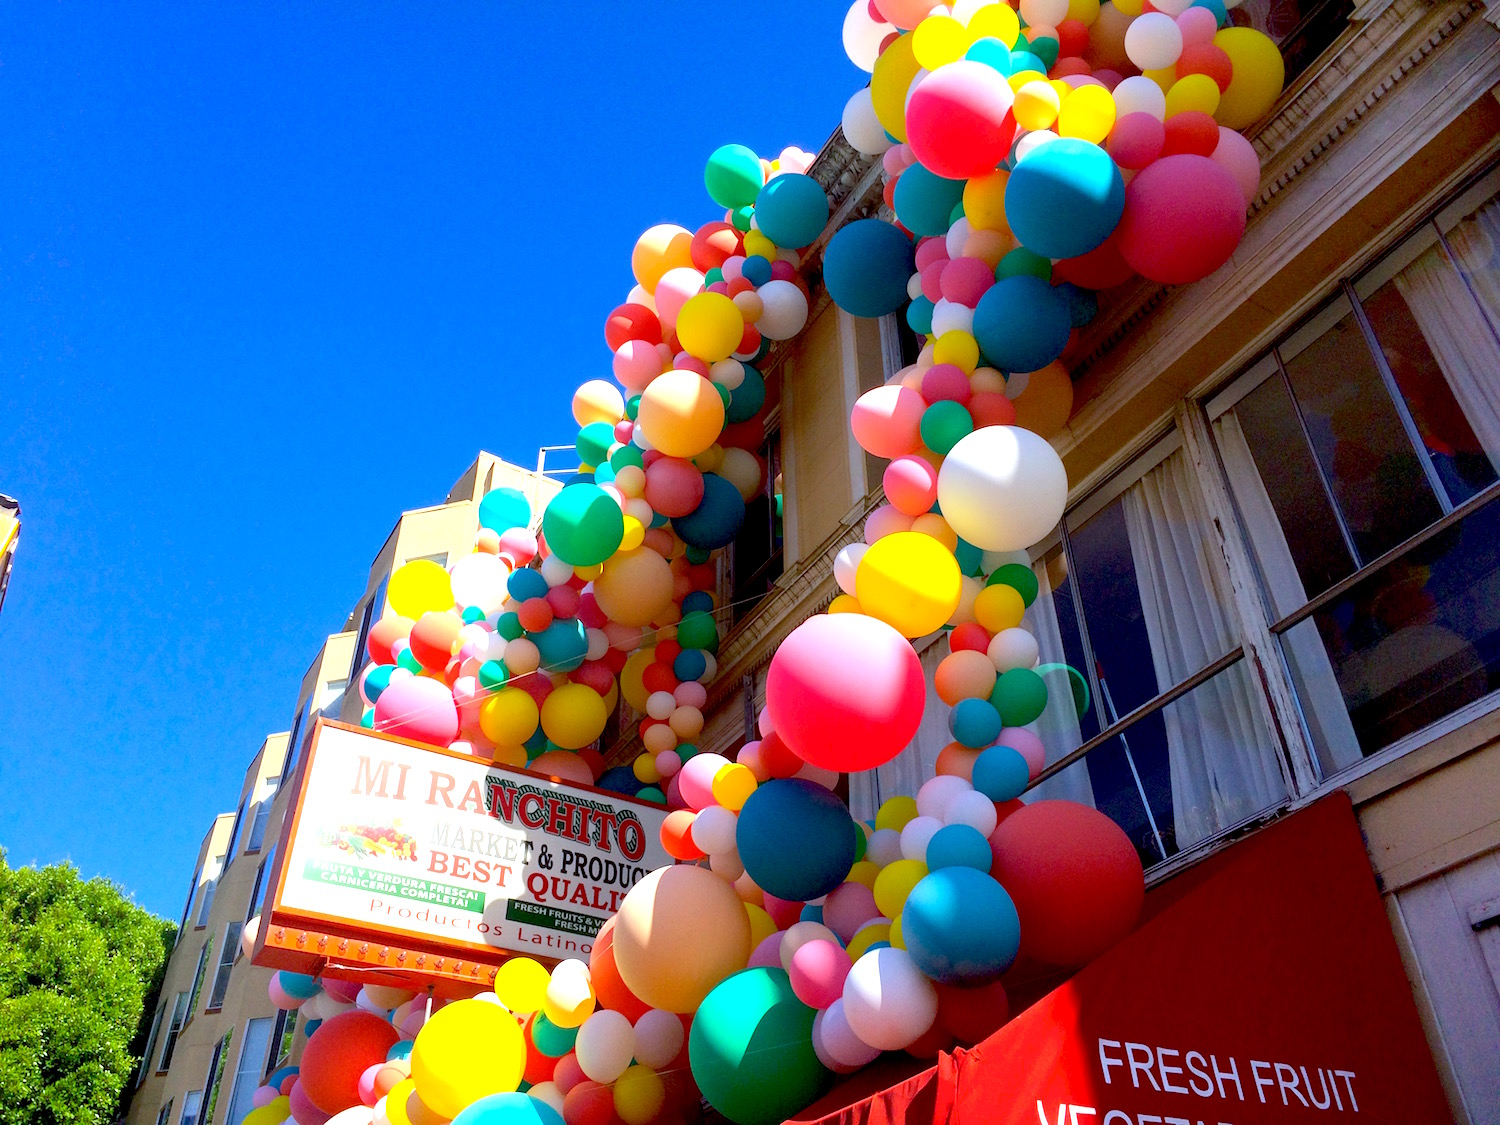 5000 Balloon Art Installation Pops Up at